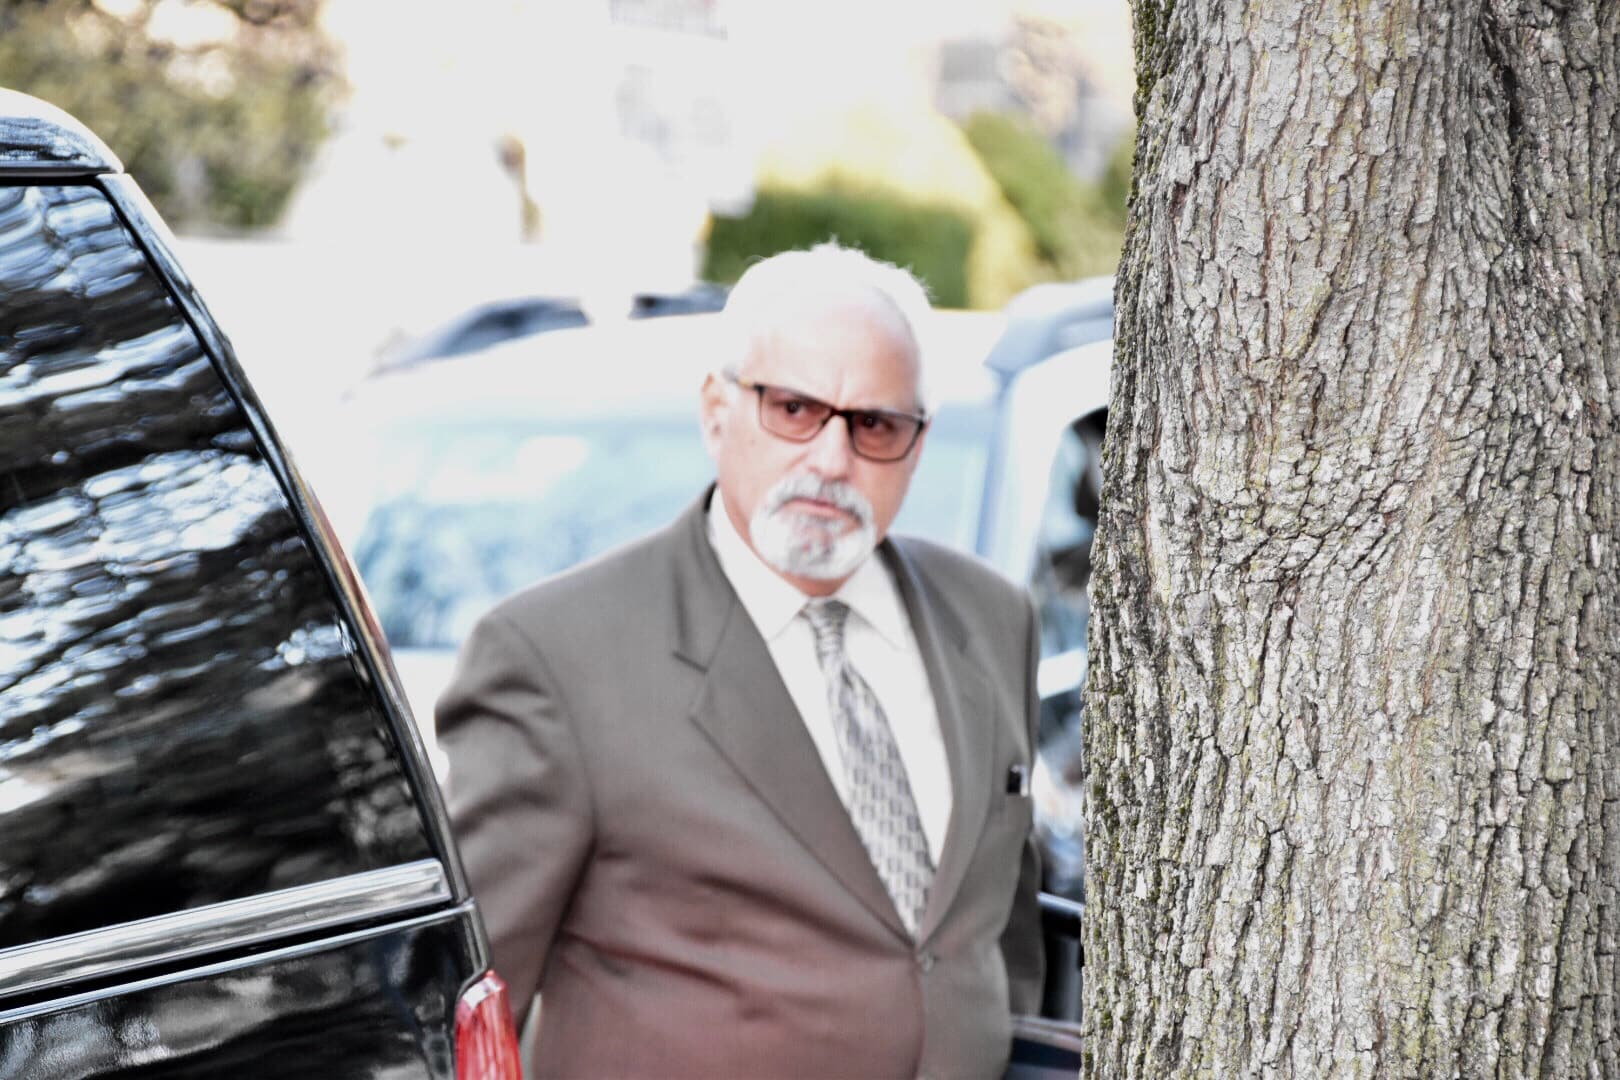 Scott Ross, a high-profile private investigator who has worked on many notable cases such as Robert Blake, Michael Jackson, Chris Brown, Sylvester Stallone and has worked with Mesereau on a number of other cases seen entering the Montgomery County Courthouse for the Bill Cosby trial. (YC.NEWS PHOTO)